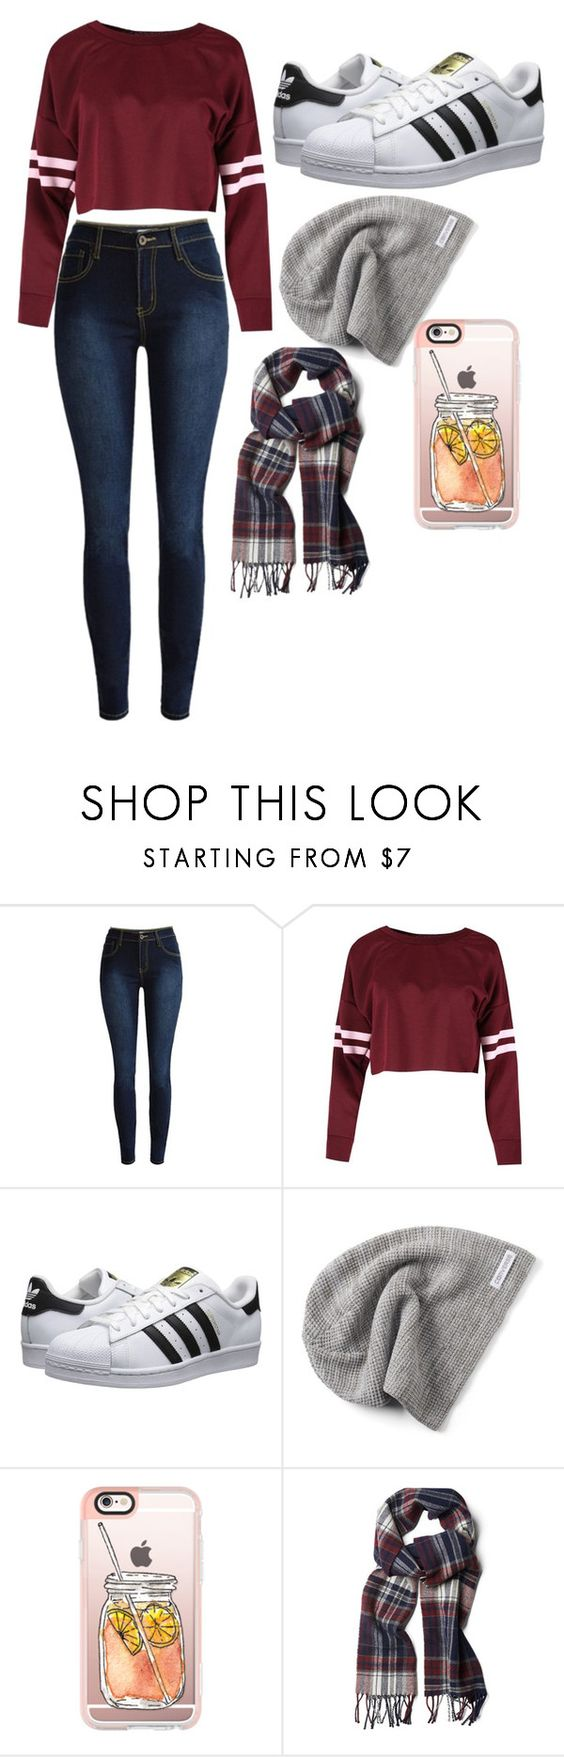 """Warm"" by nightmarexox ❤ liked on Polyvore featuring adidas Originals, Converse, Casetify and GANT"